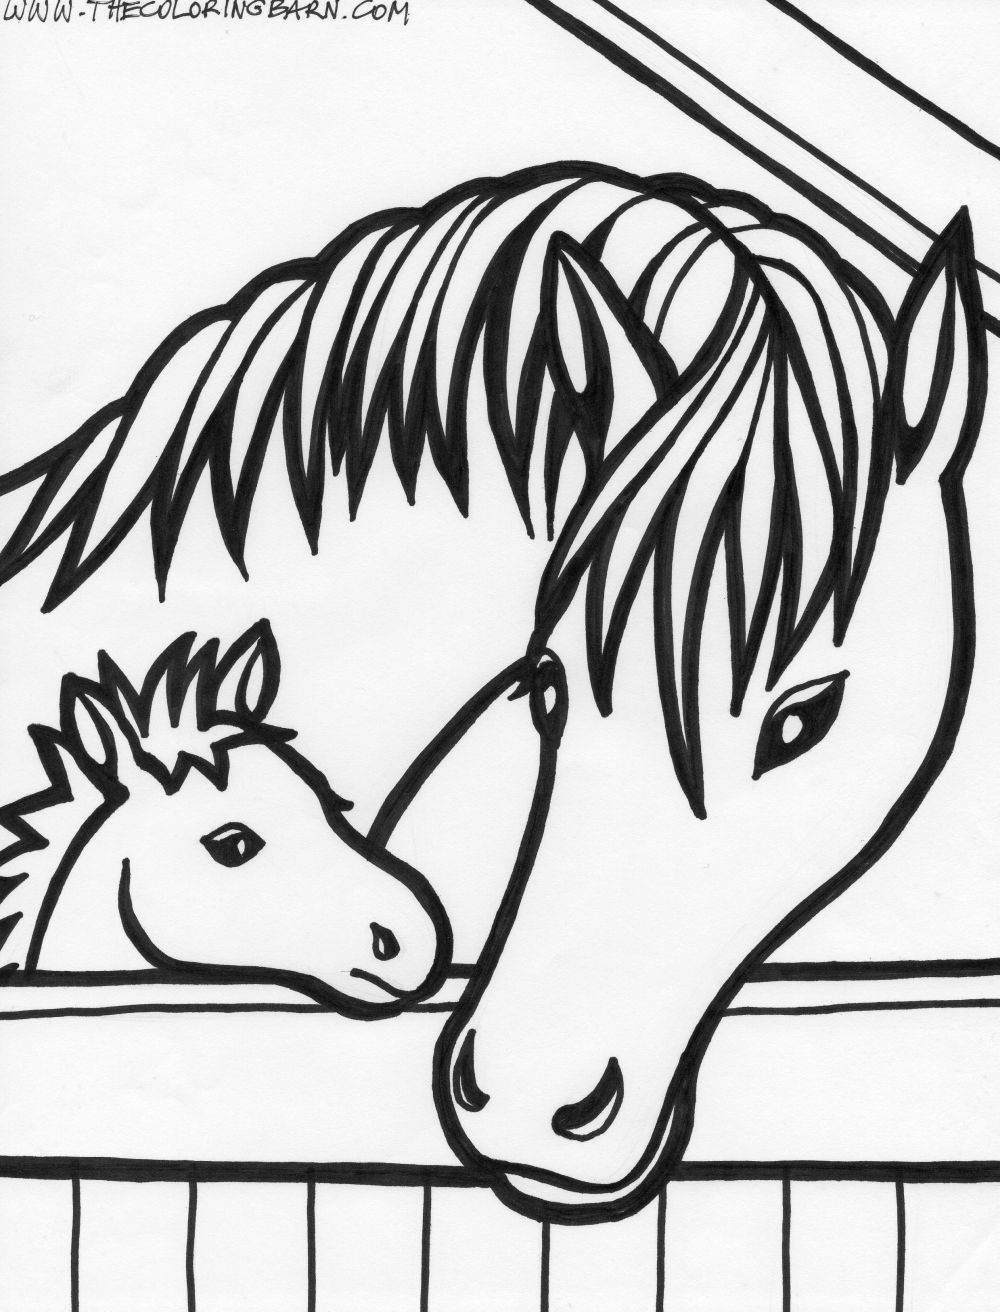 horse head coloring pages printable - photo#33